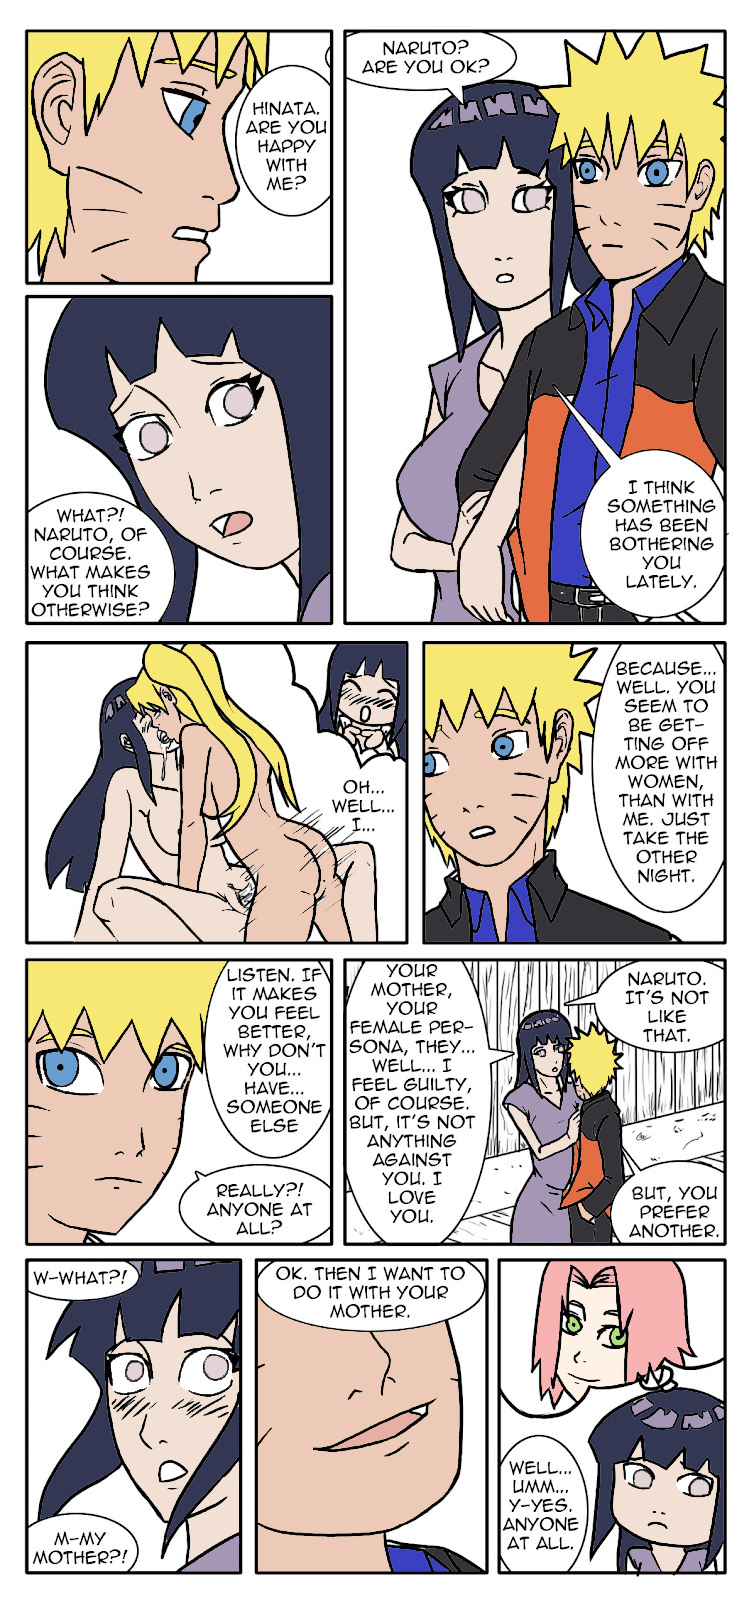 is mother naruto fem fanfiction a Fable how to have intercourse